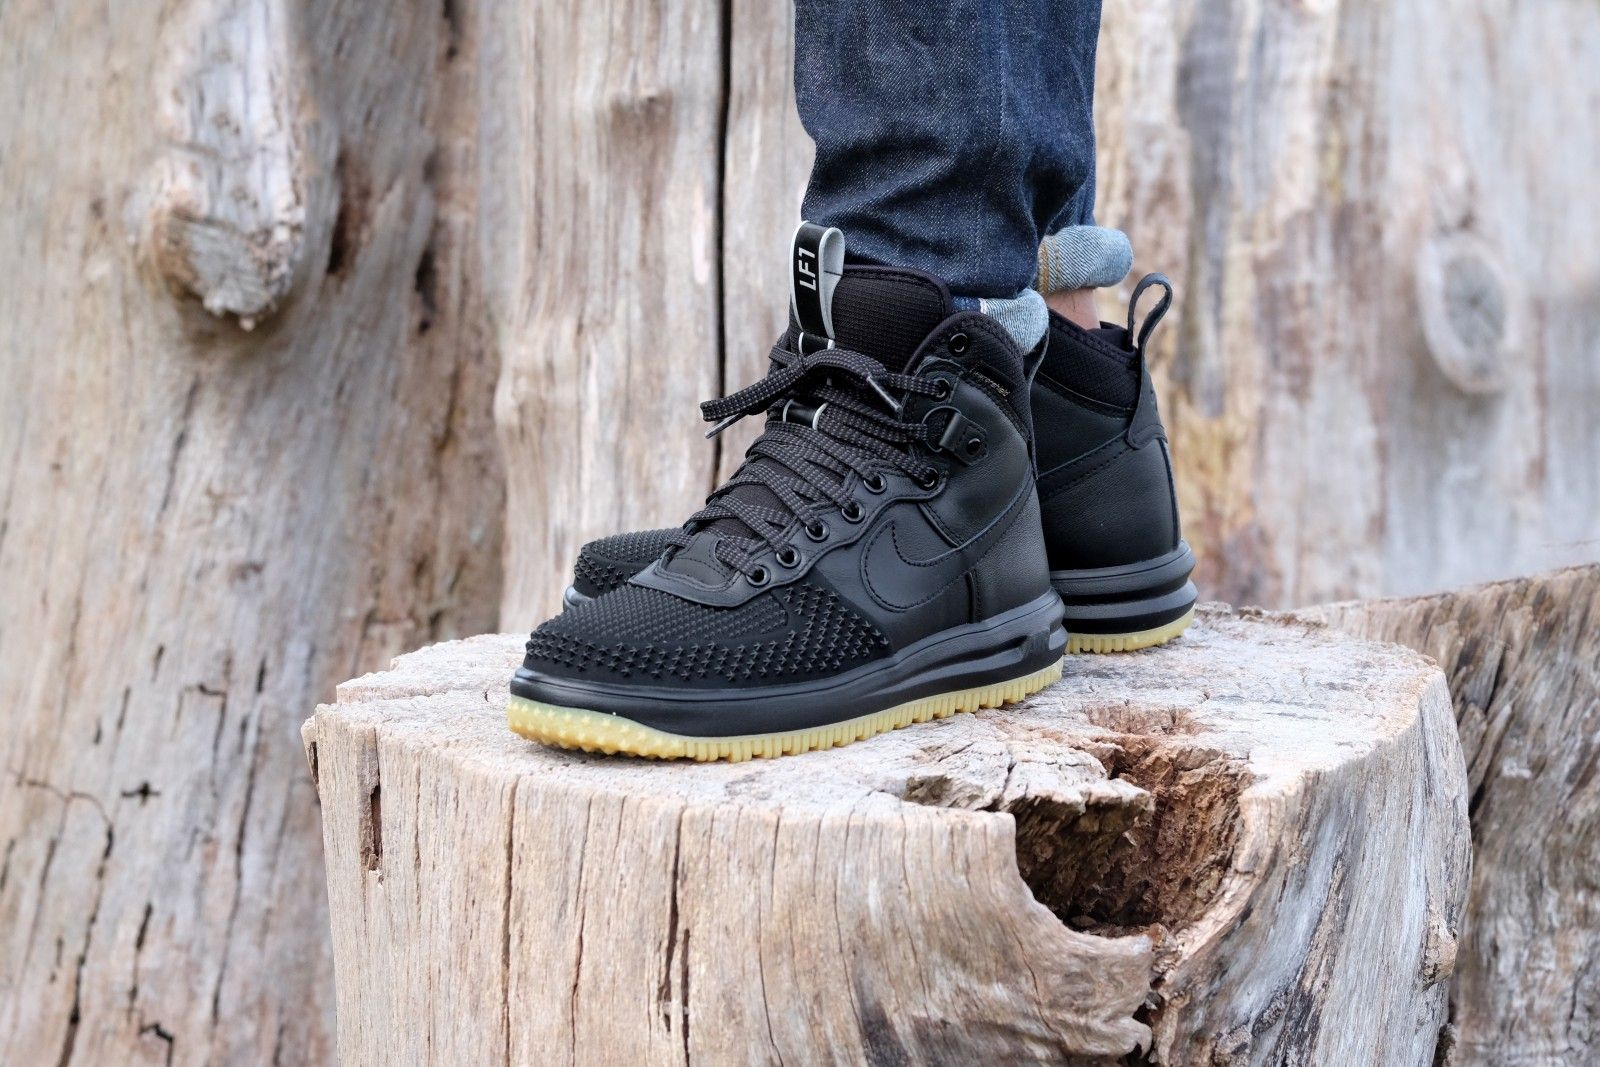 Nike Lunar Force 1 Duckboot Black/ Black-Metallic Silver - 805899-003